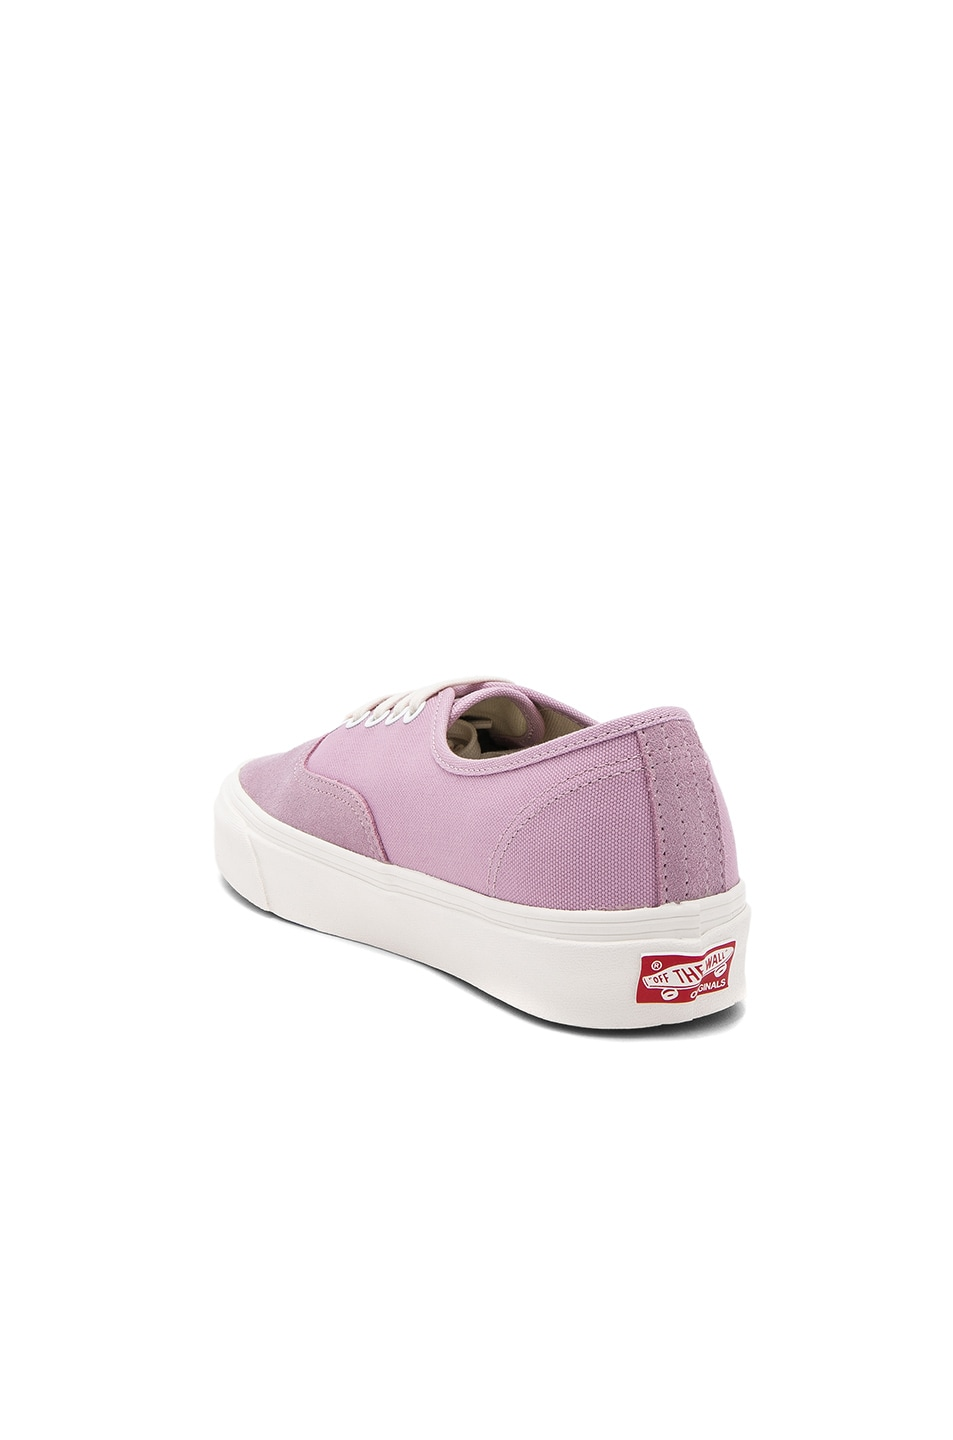 7df6bbc8ac13fb Image 3 of Vans Vault Canvas OG Authentic LX in Fragrant Lilac